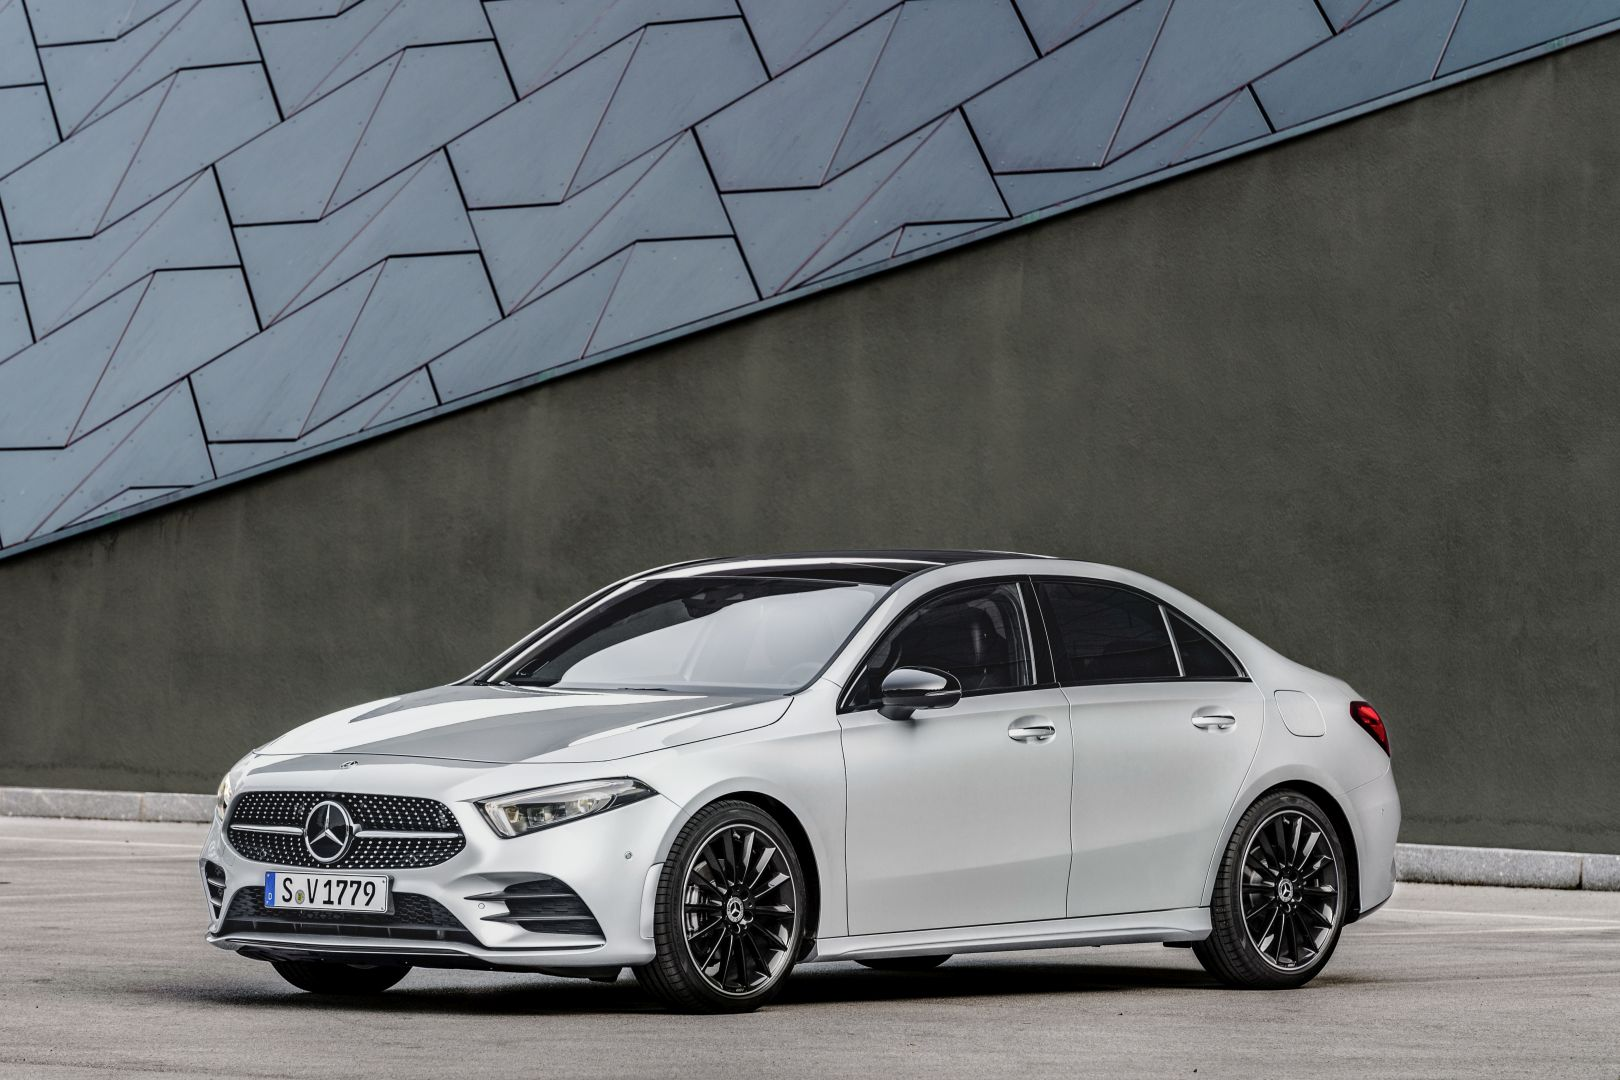 mercedes benz a class sedan v177 specs photos 2018. Black Bedroom Furniture Sets. Home Design Ideas